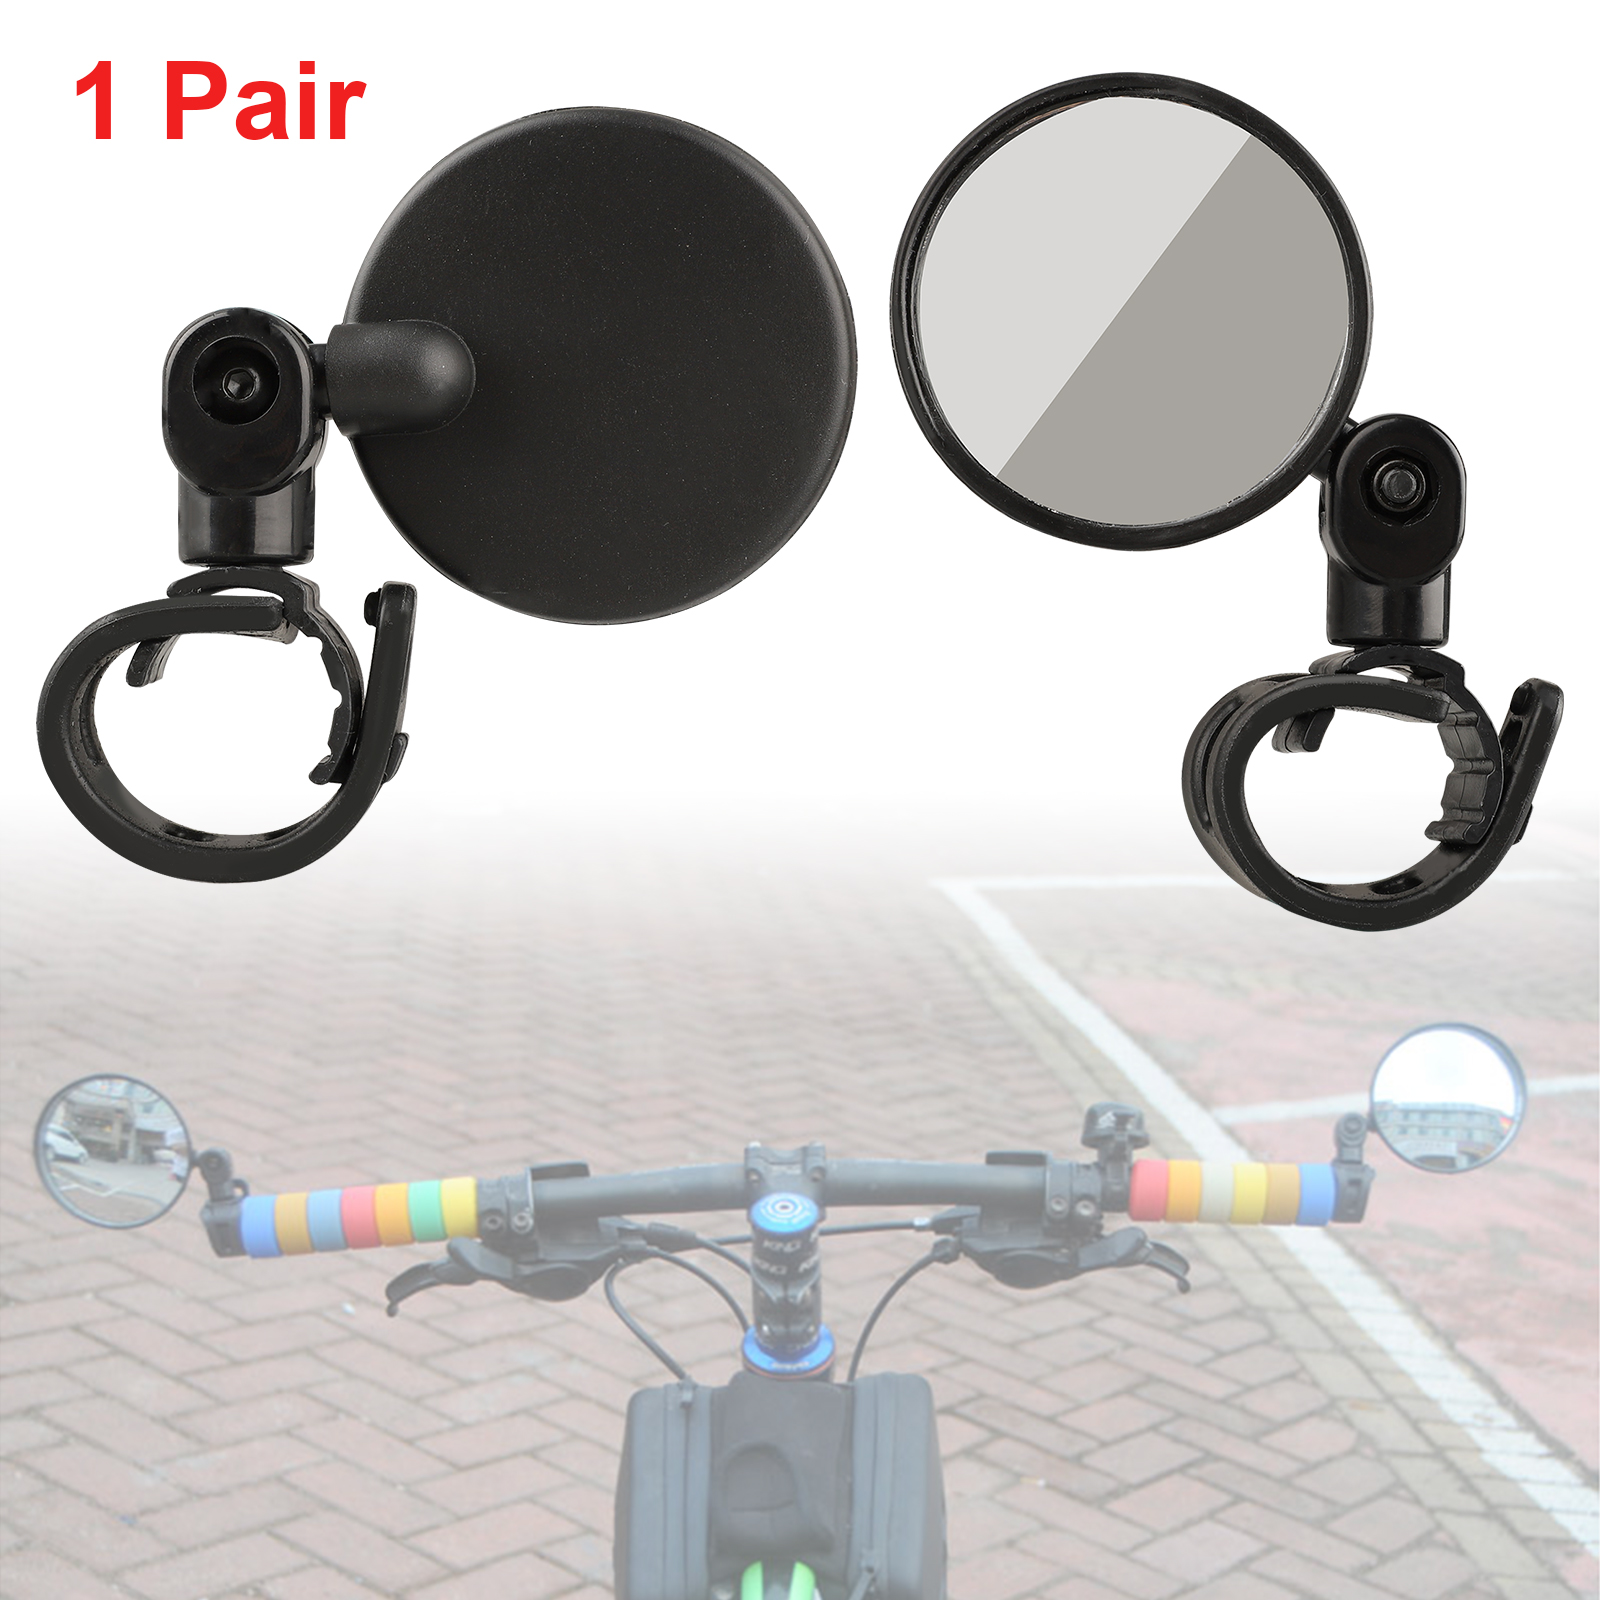 1 Pair Bike Bicycle Cycling Cycle Handlebar Glass Rear View Rearview Mirror